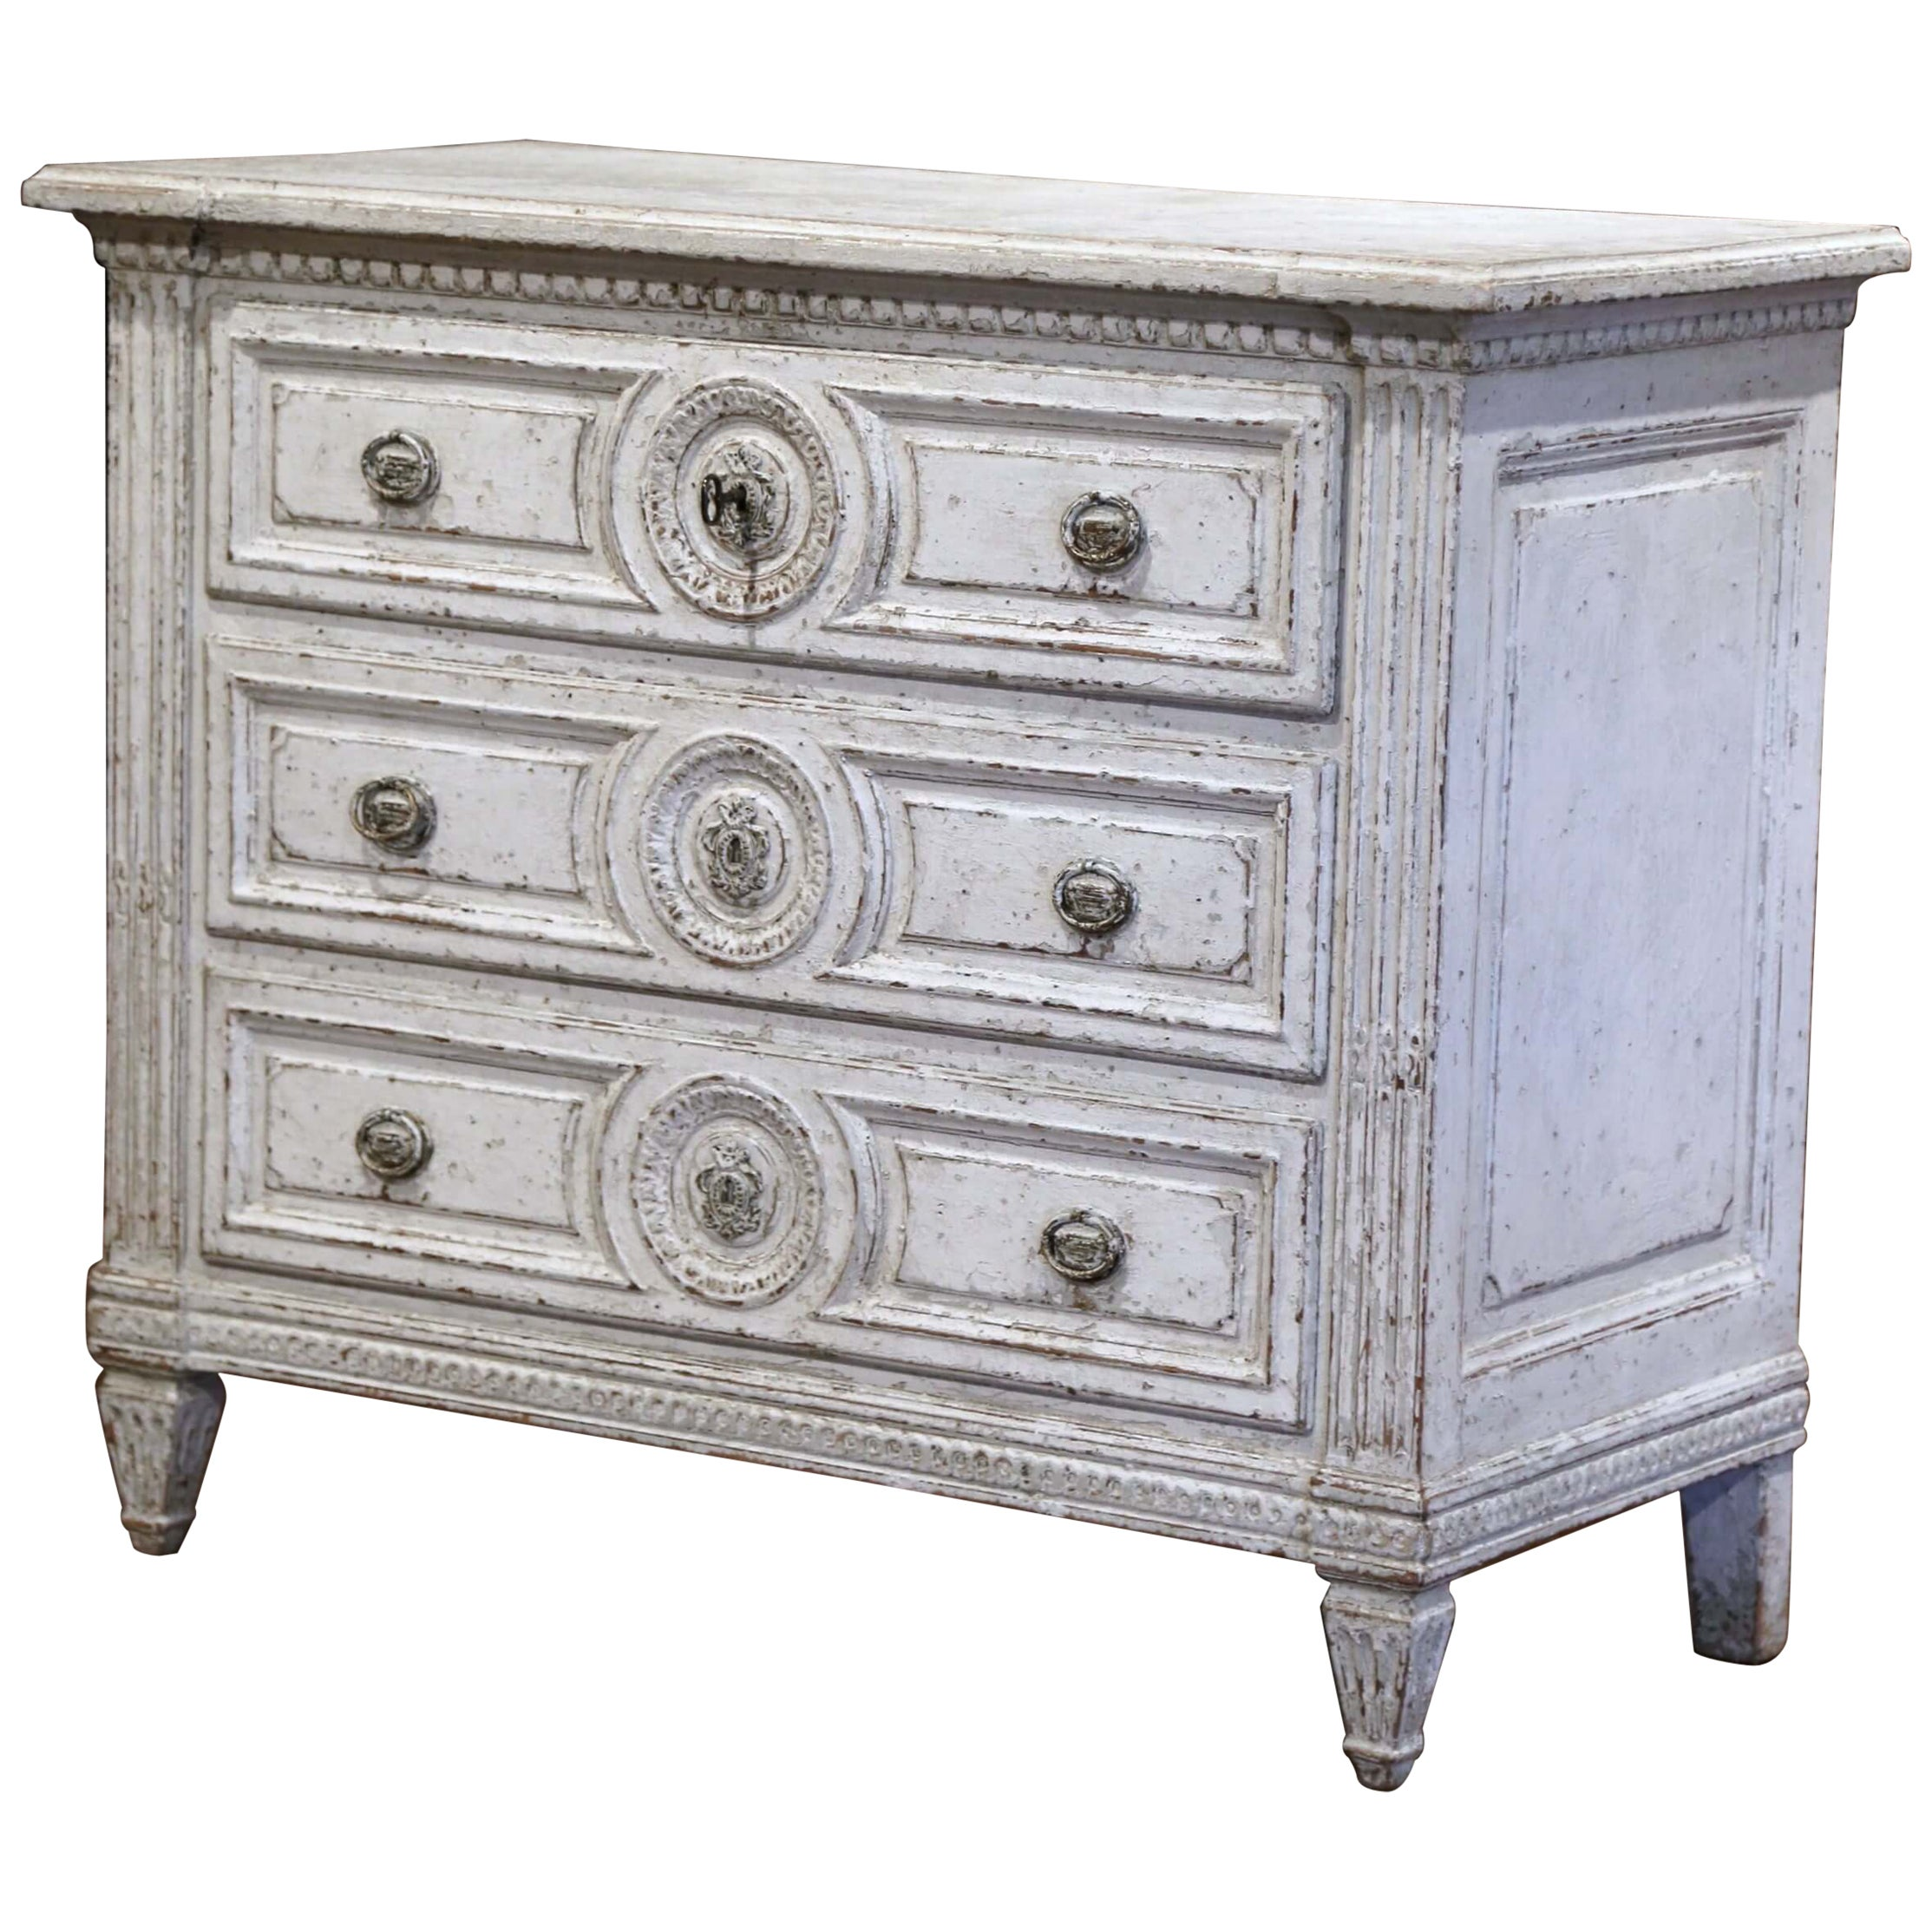 19th Century Louis XVI Carved and Painted Three-Drawer Commode Chest